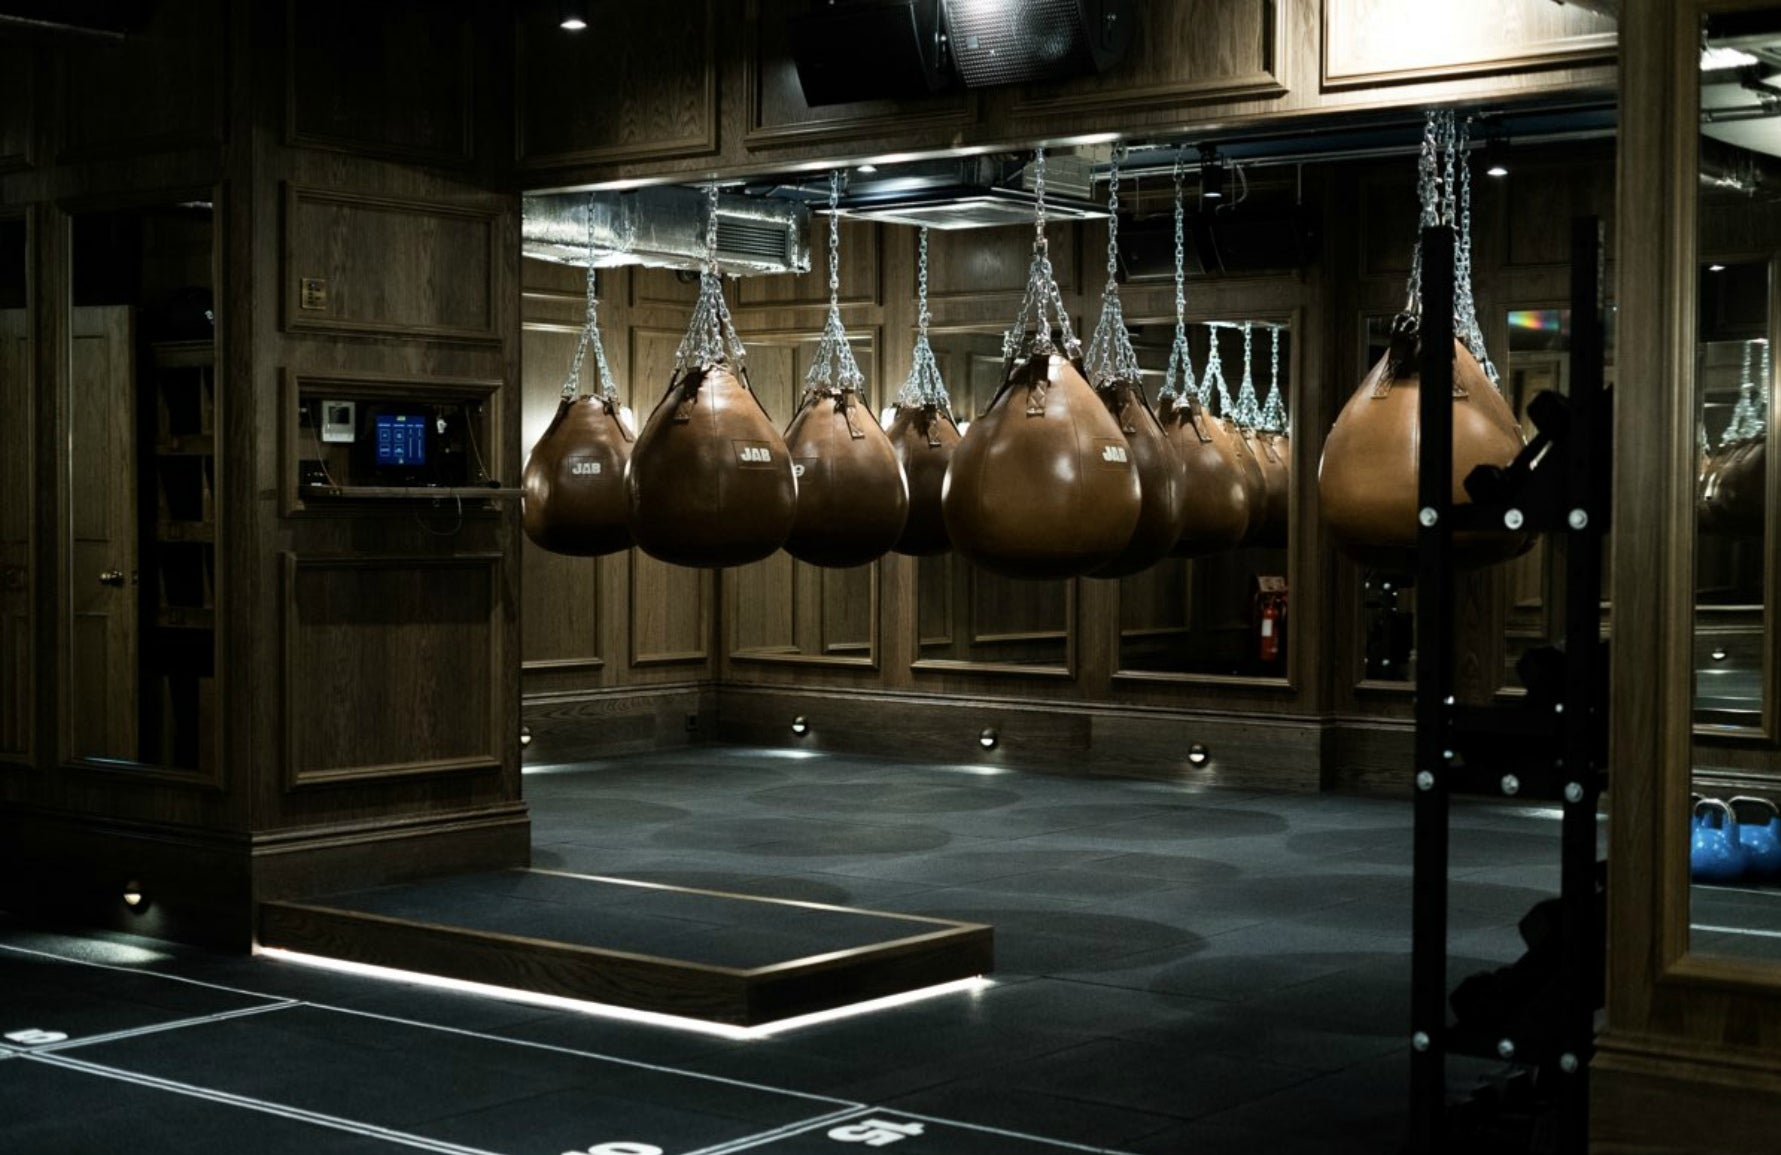 Best Gyms in London Gyms | Jab | Boxing Gyms | Read more in The Luxurist at LuxDeco.com